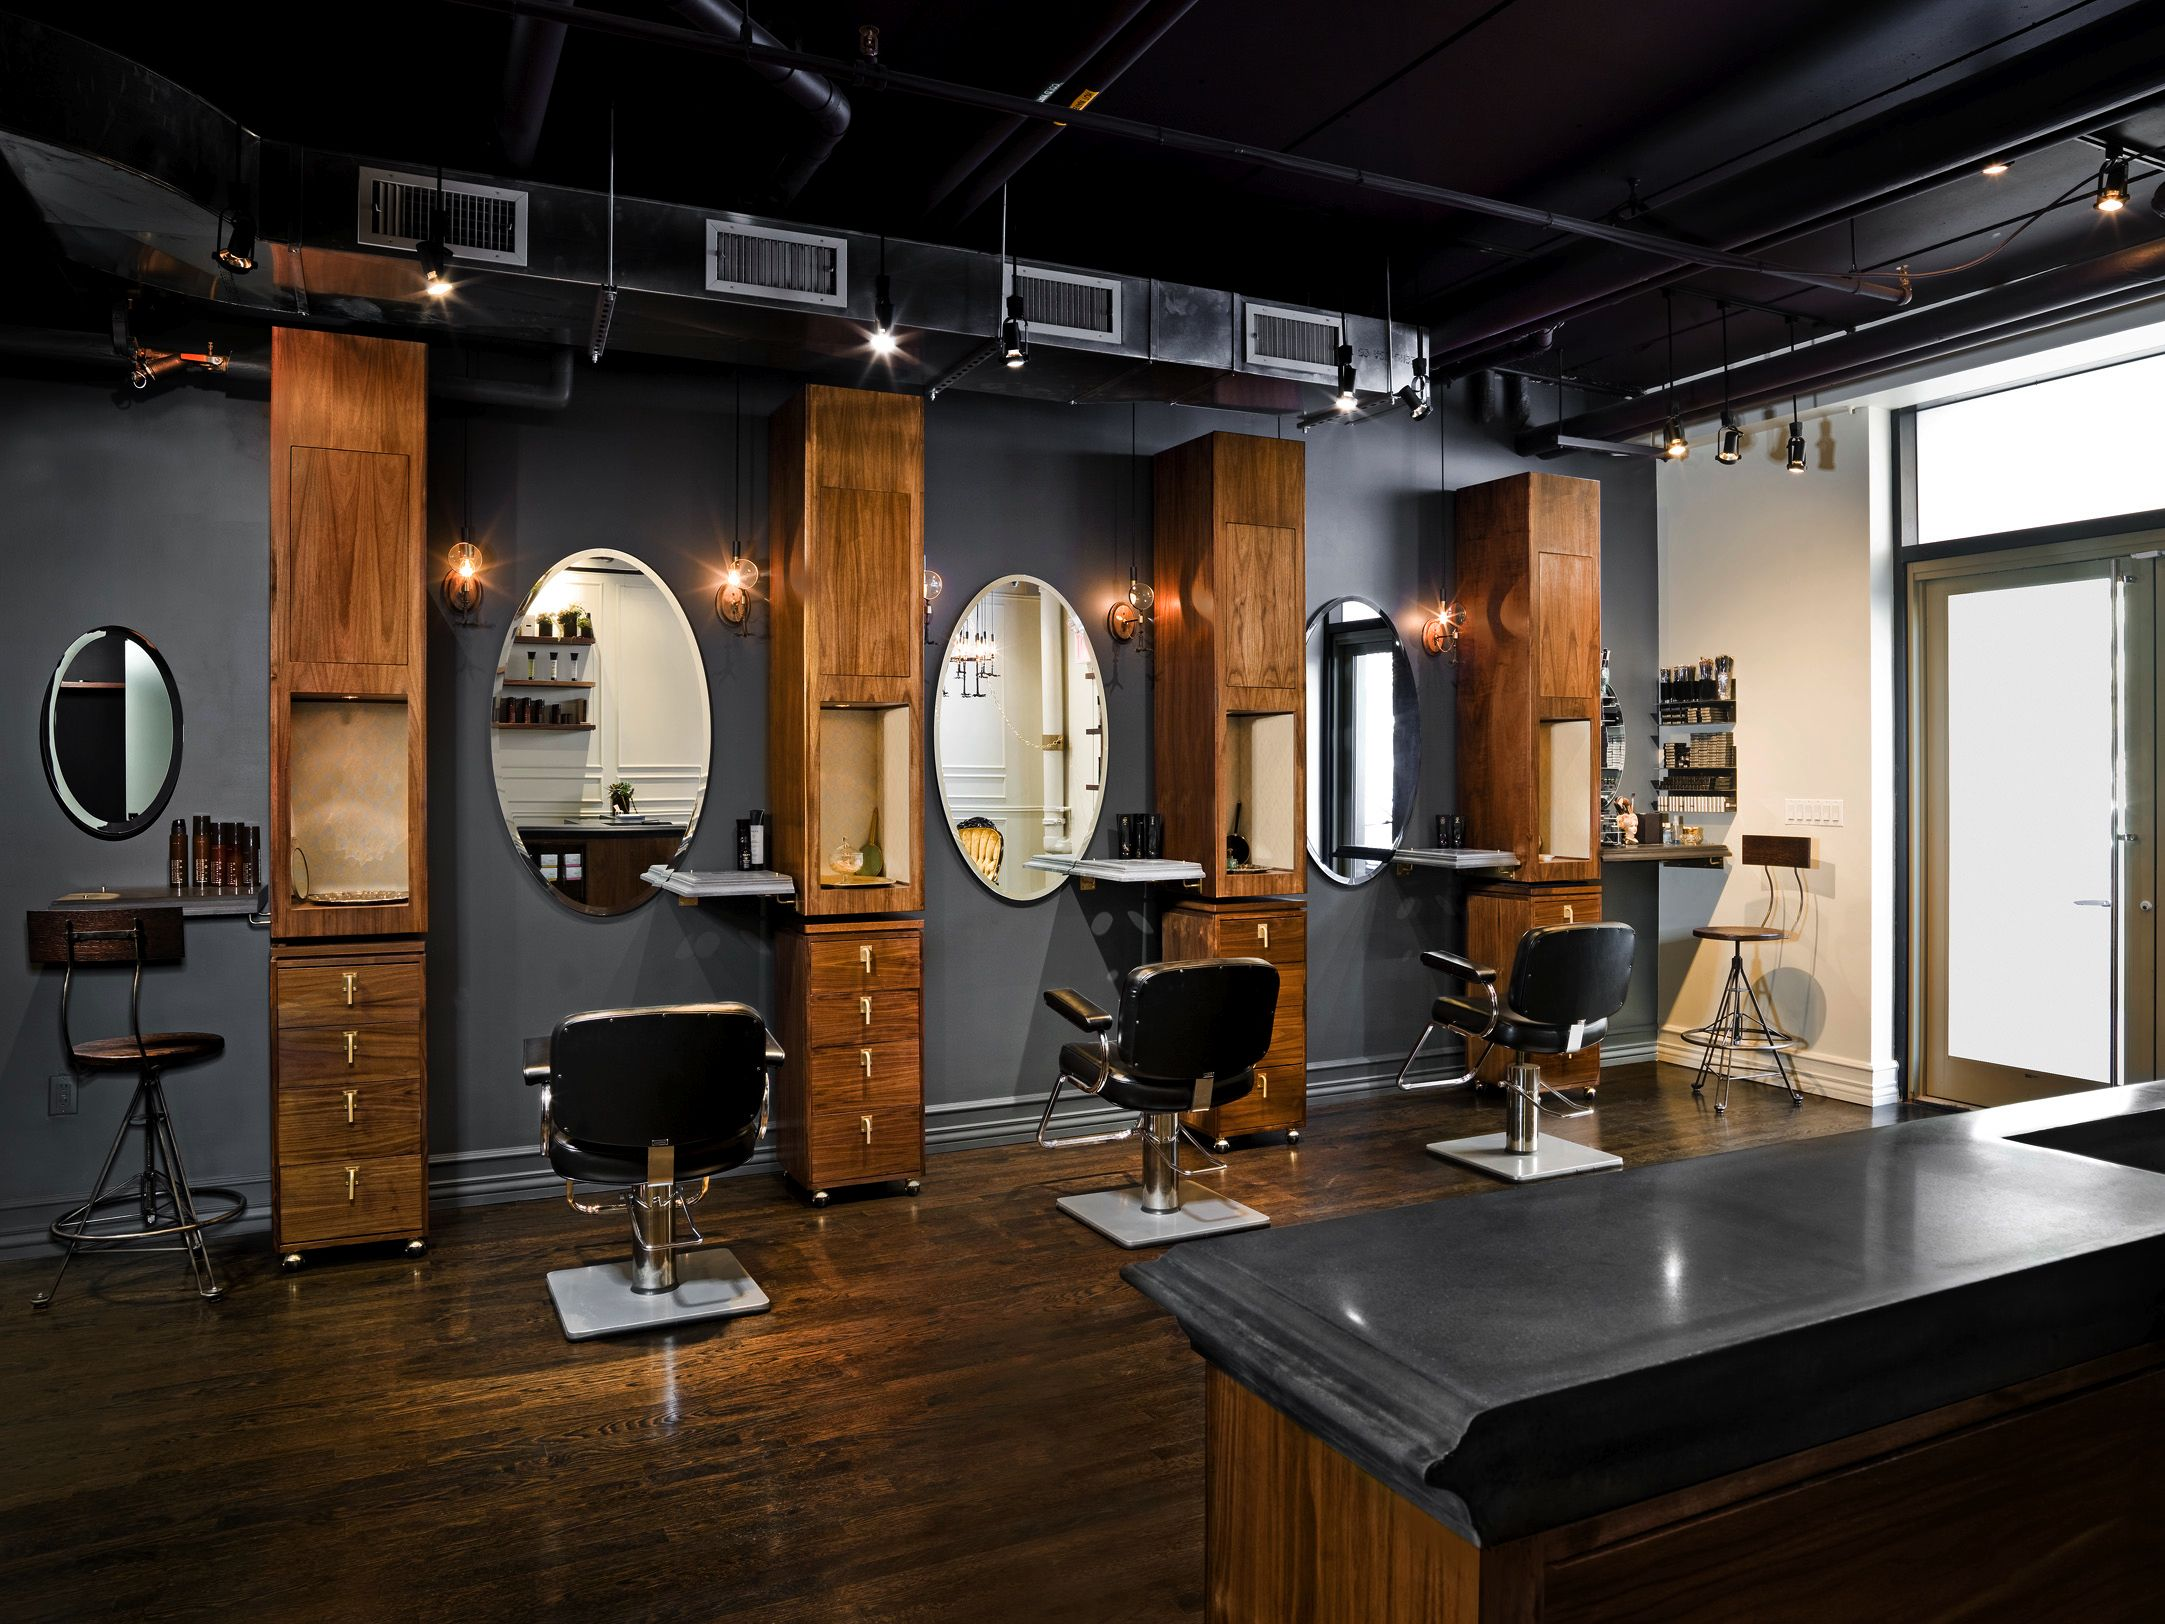 best images about salon design ideas waiting 17 best images about salon design ideas waiting area bar and salon design